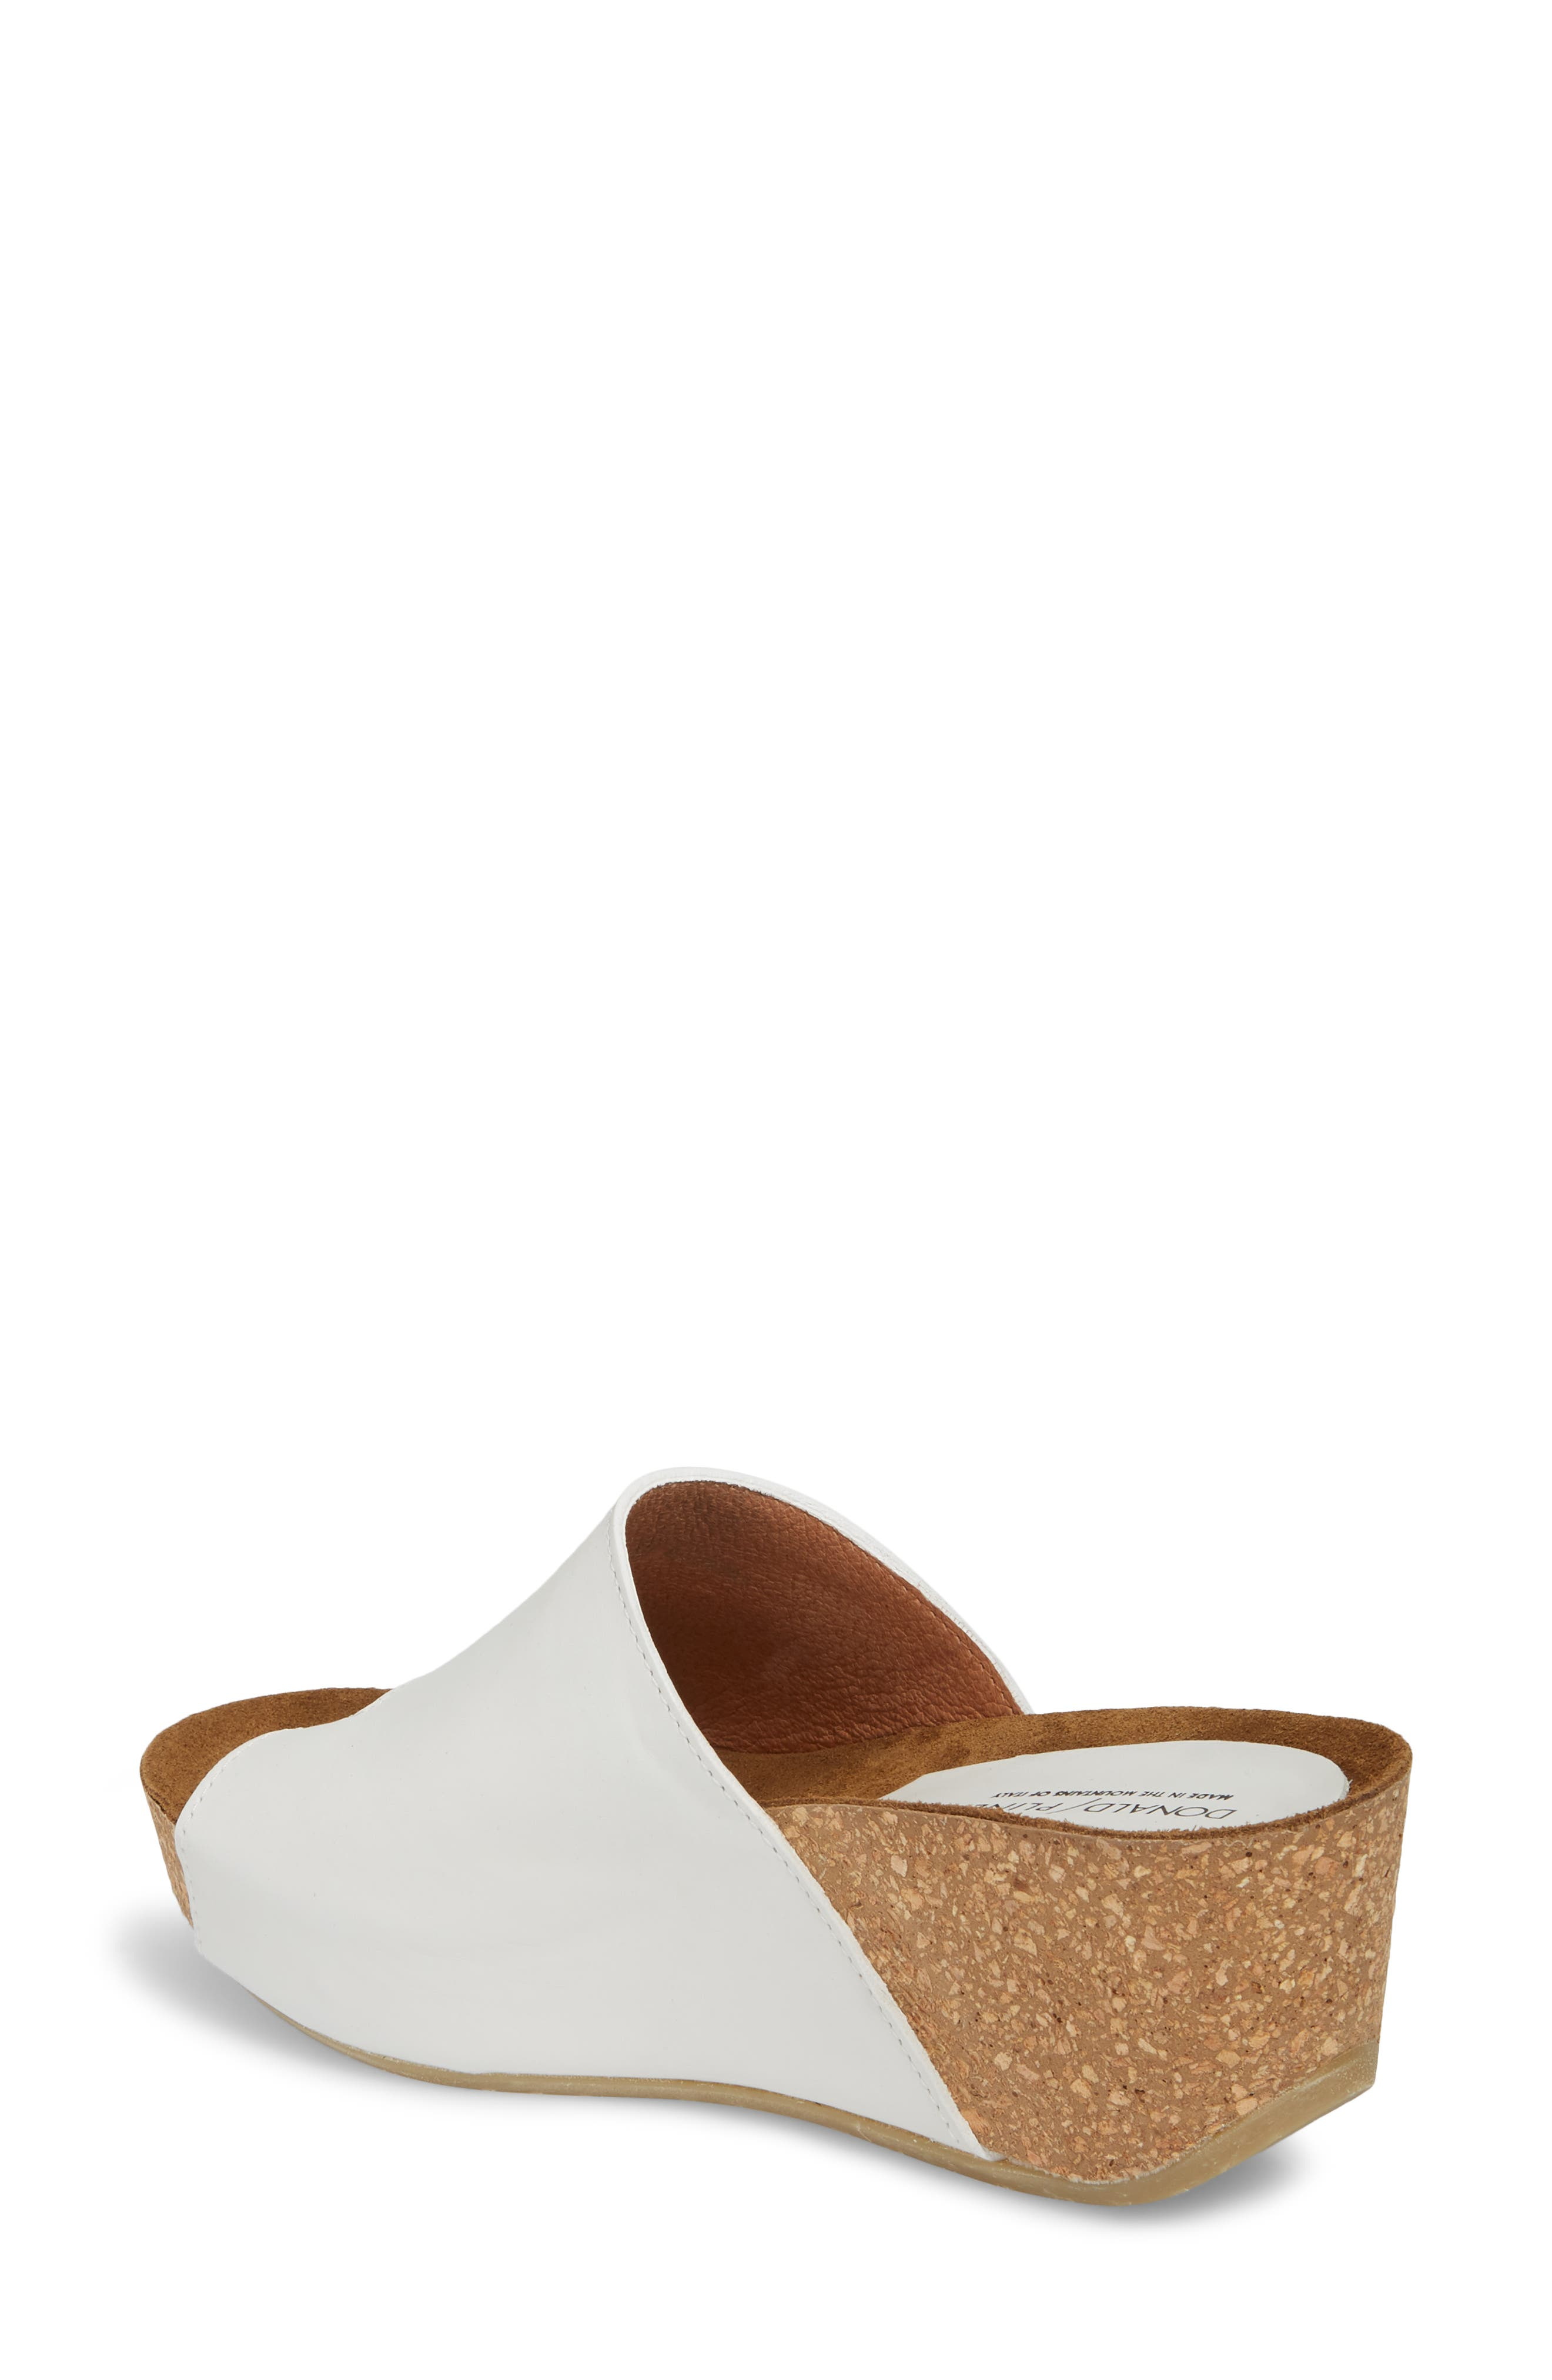 Donald J Pliner Ginie Platform Wedge Sandal,                             Alternate thumbnail 10, color,